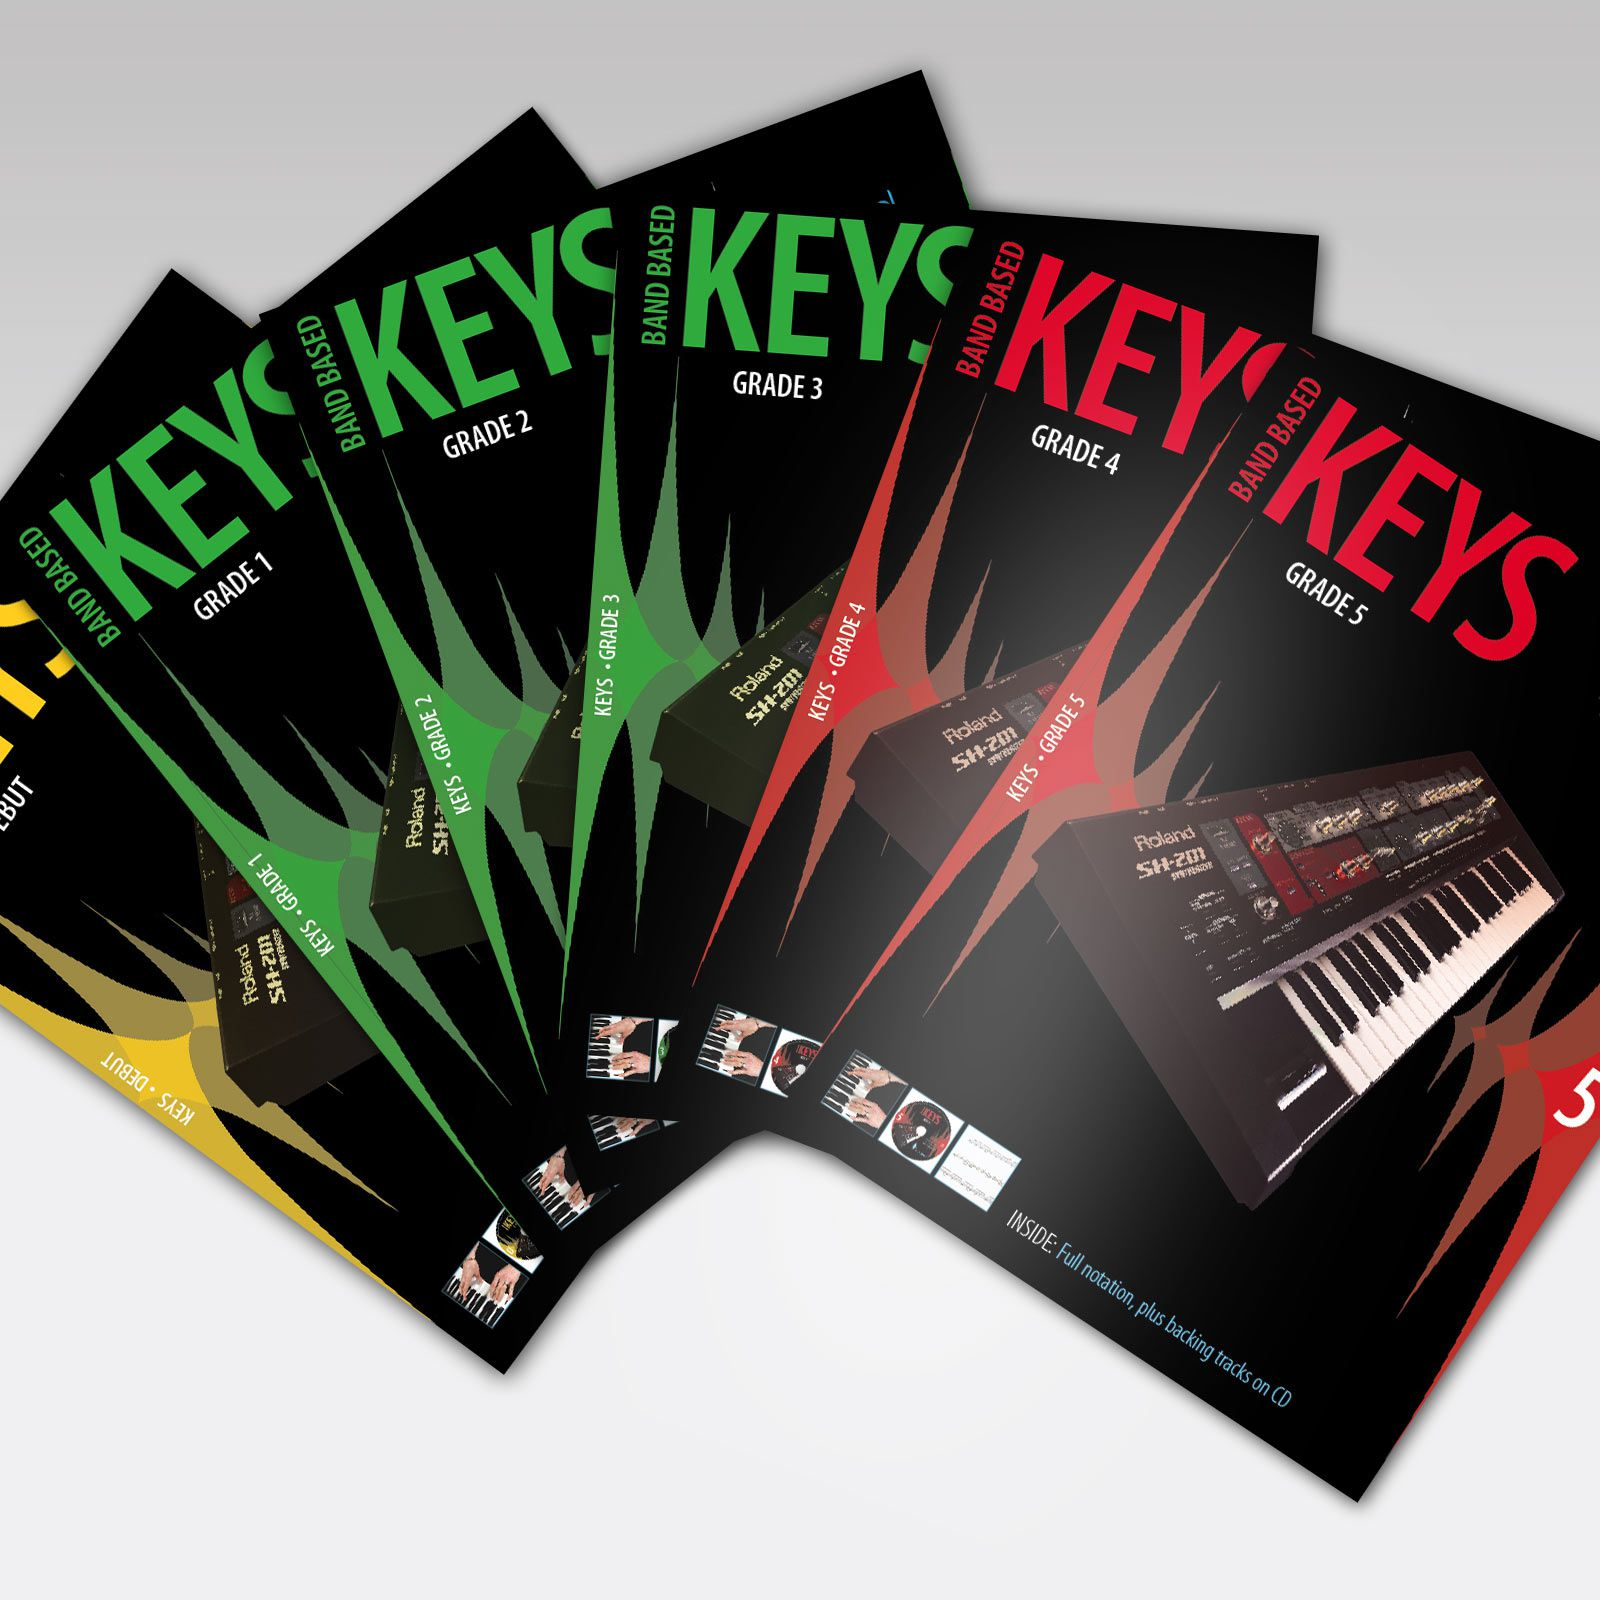 Band Based Keys Grade Book Covers